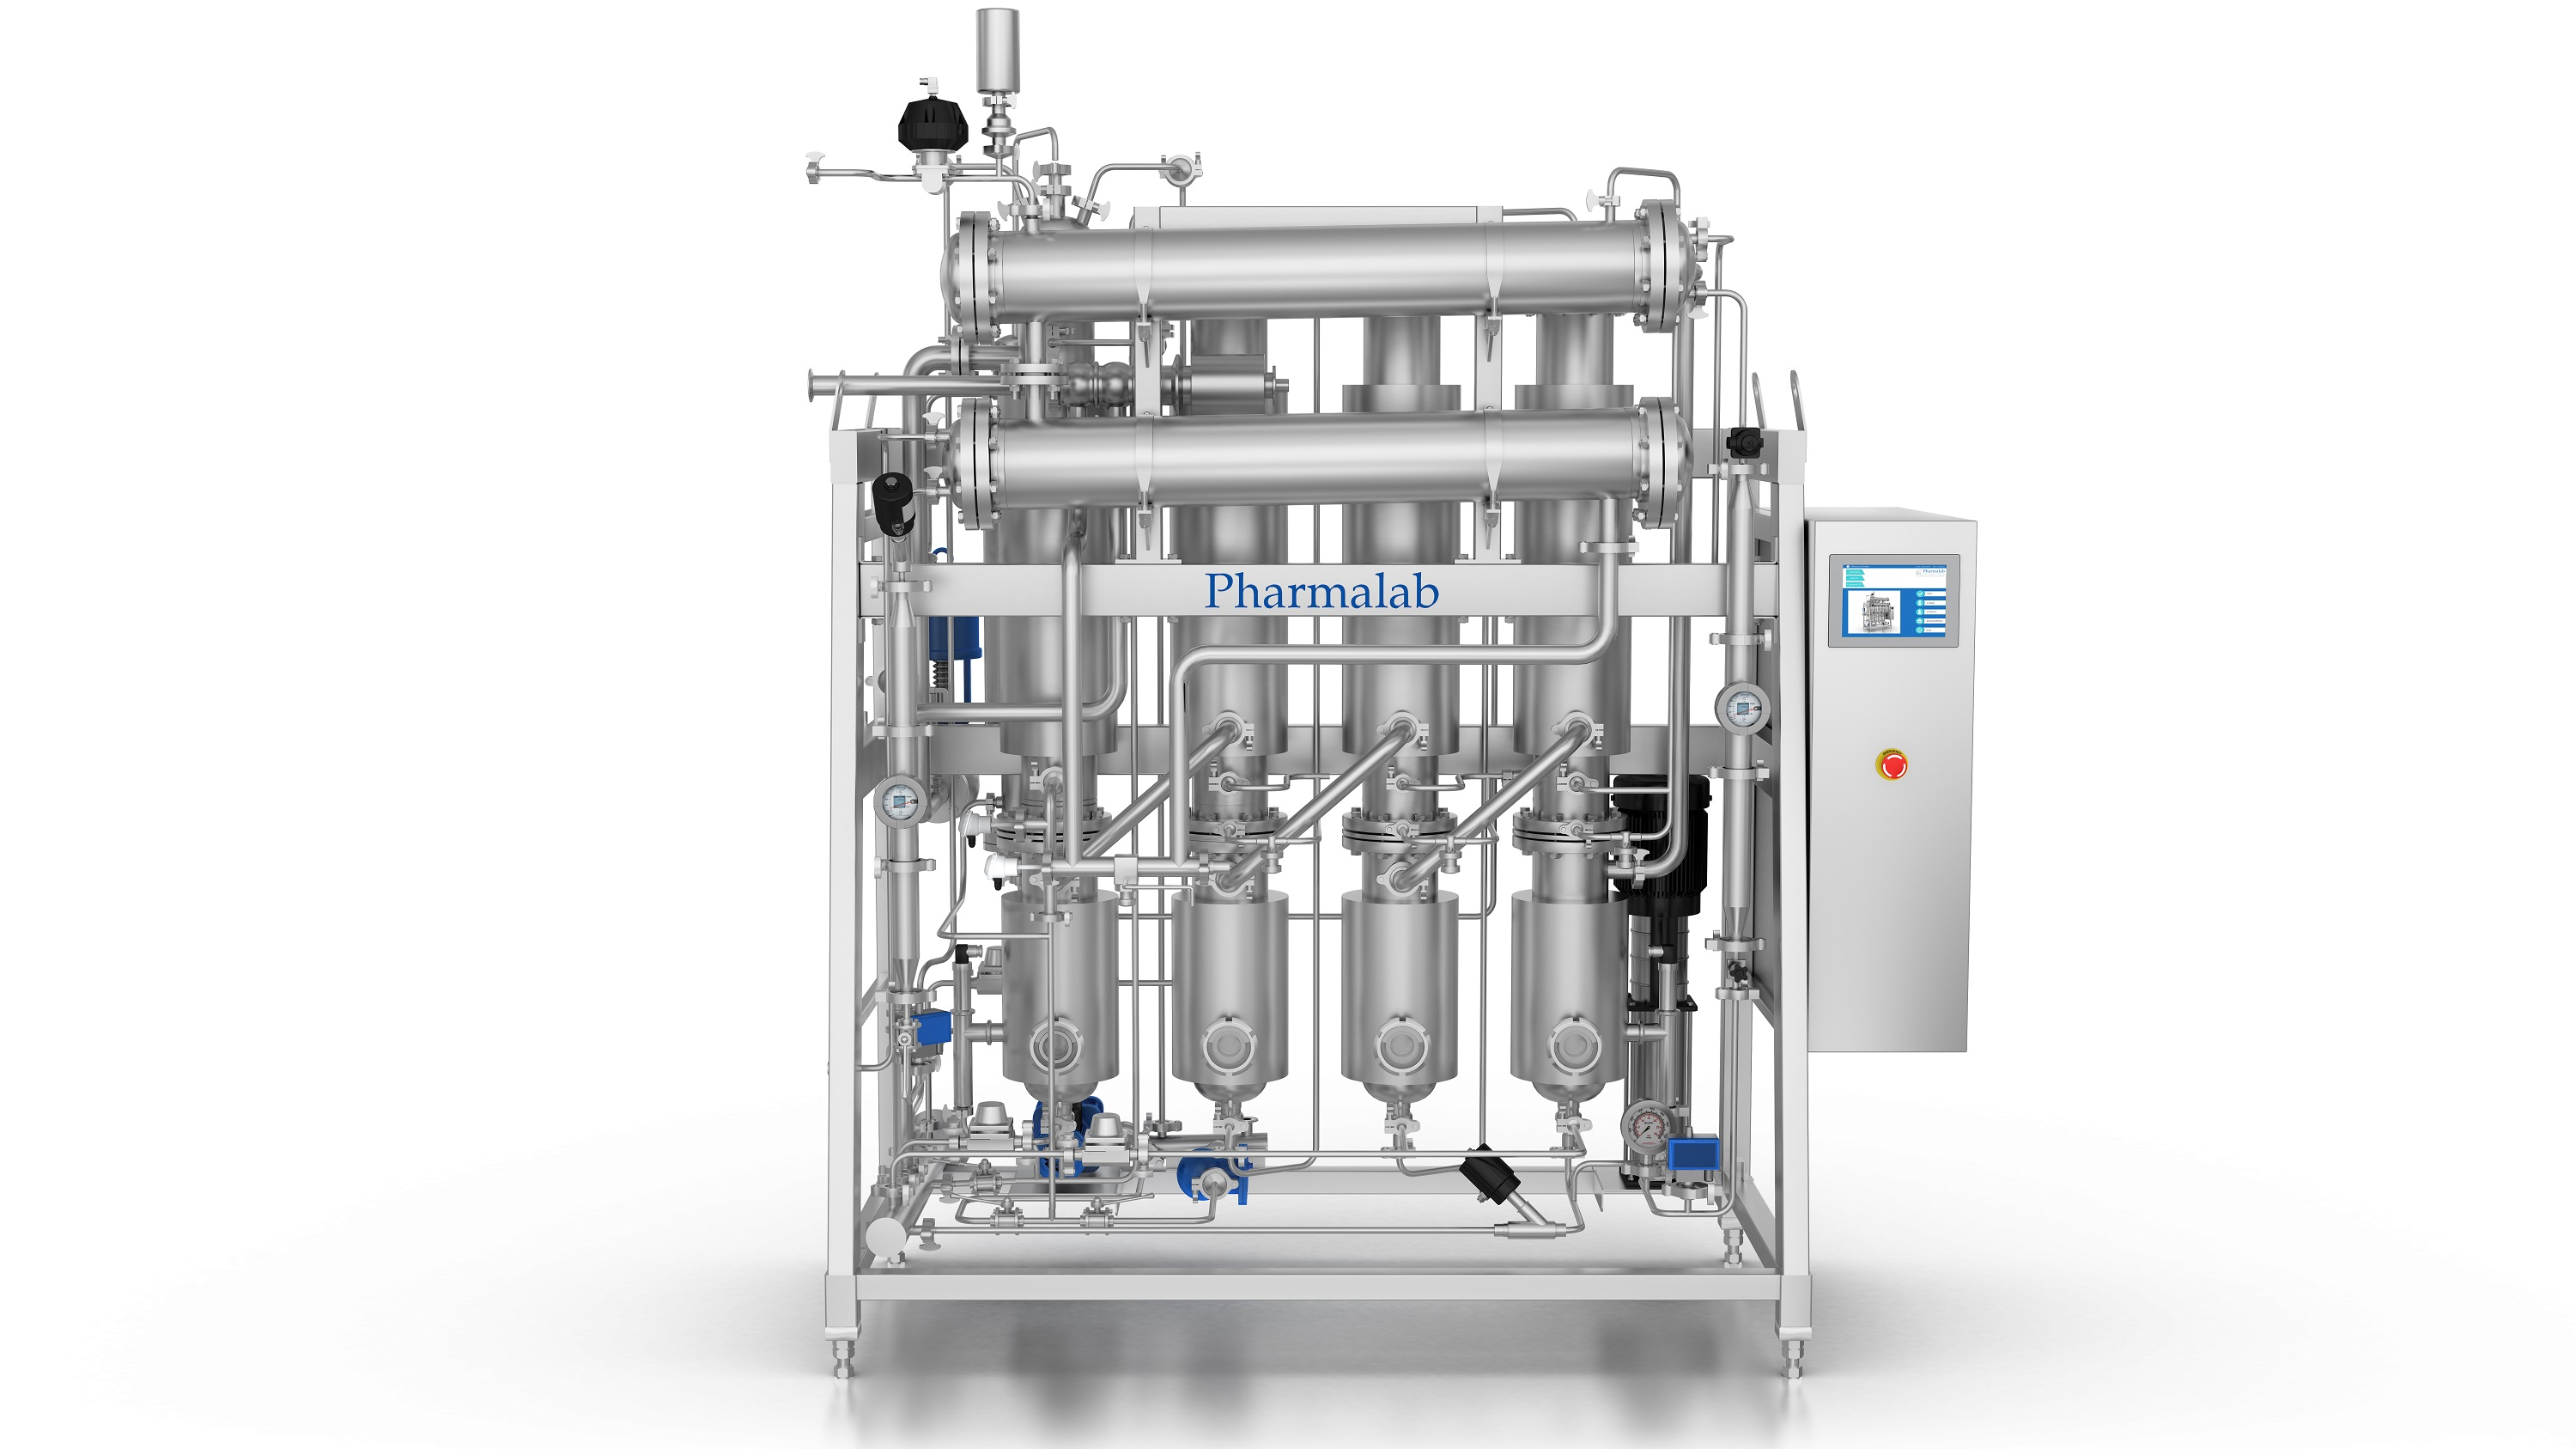 WATER FOR INJECTION GENERATION PLANT